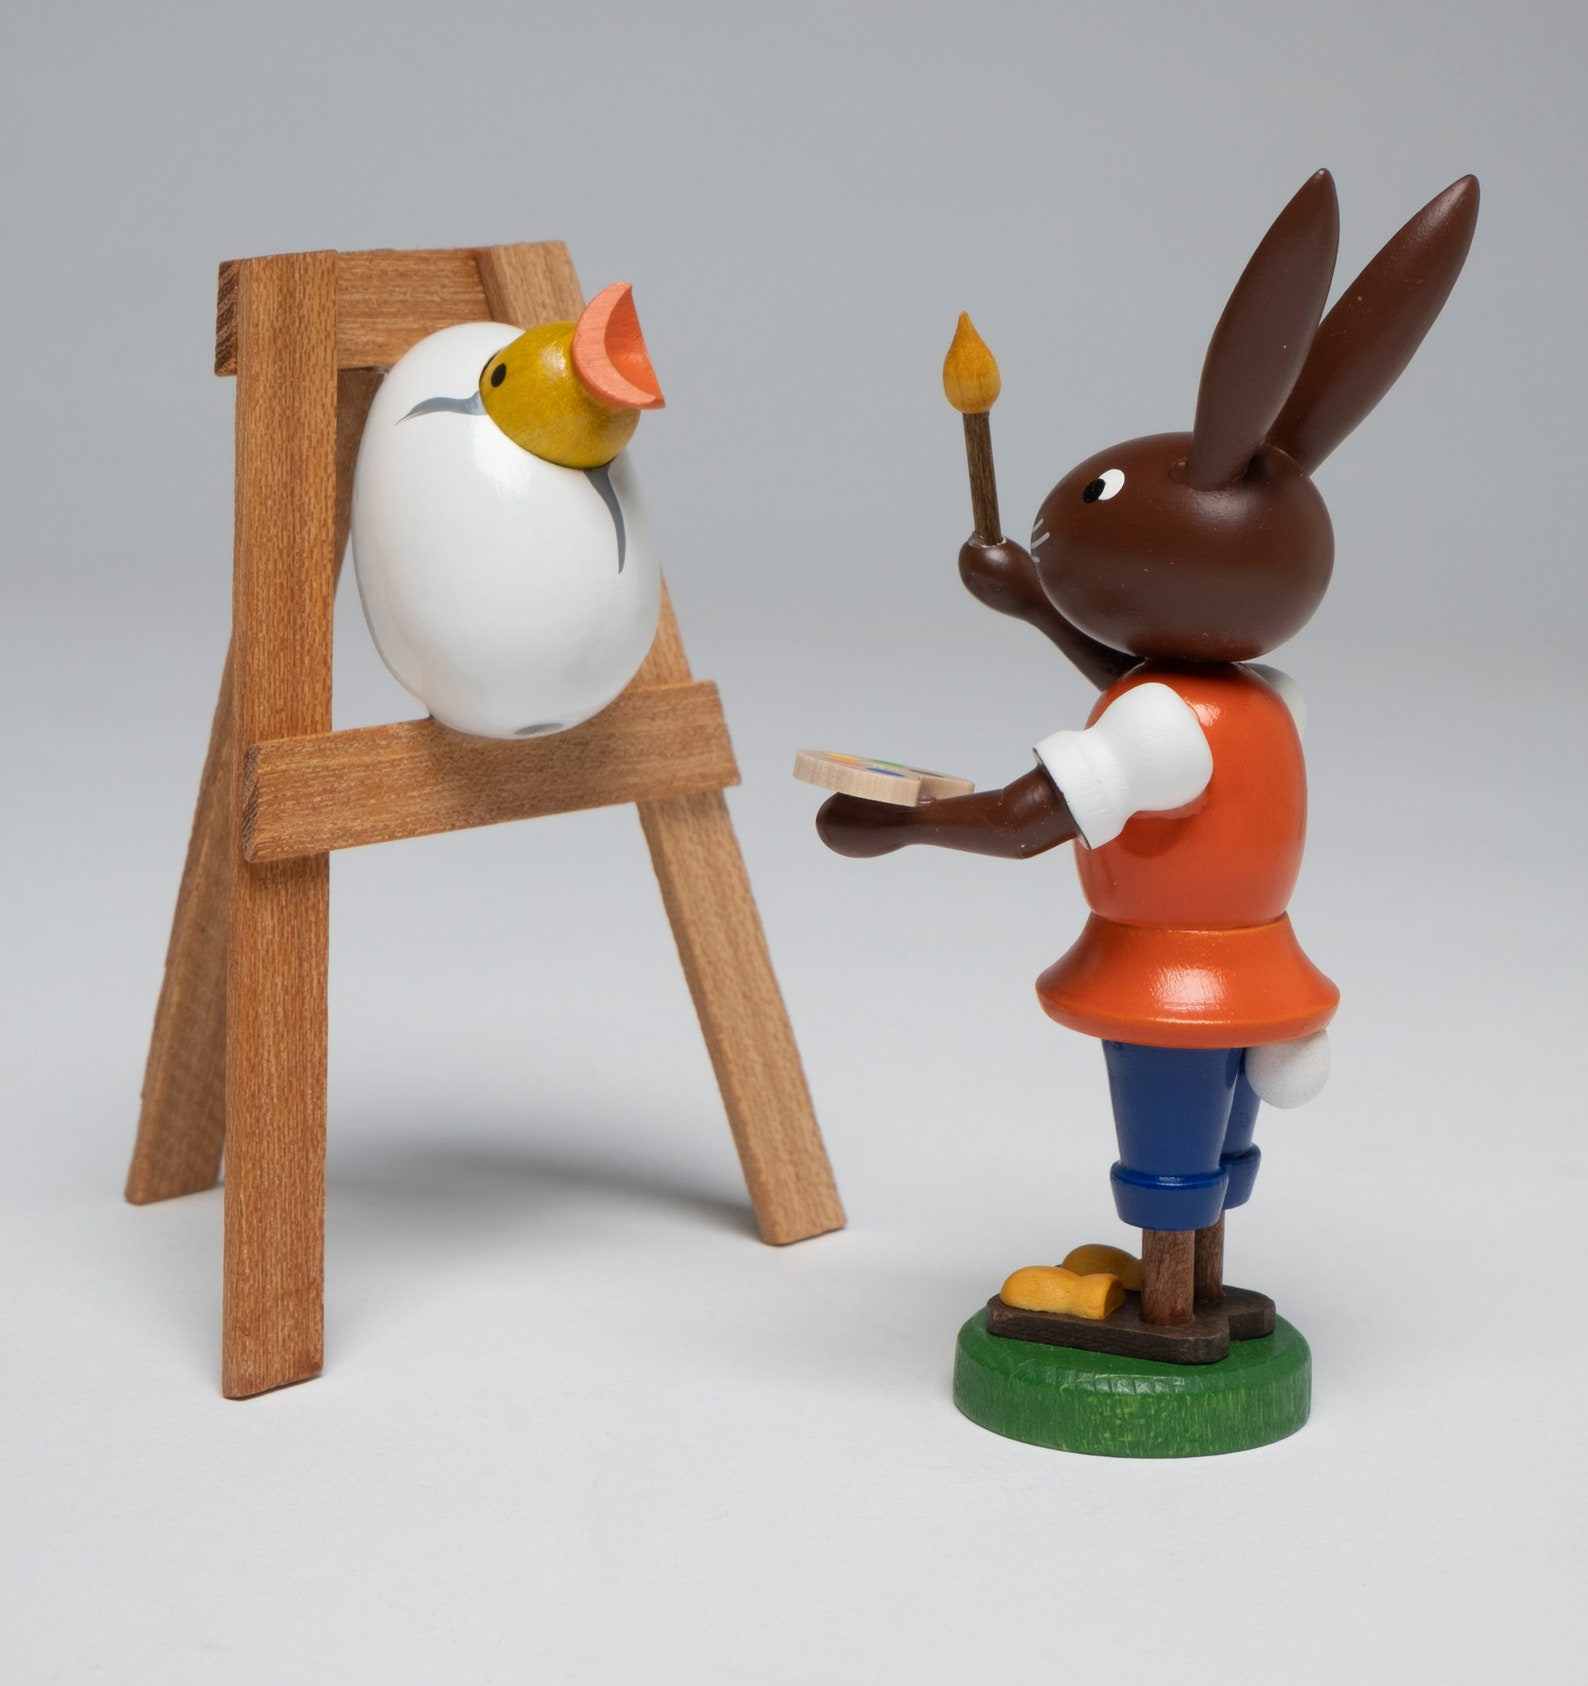 Erzgebirge Handarbell Bunny artist painting a yellow chick in egg on easel Erzgebirge folk art hand painted made in Germany